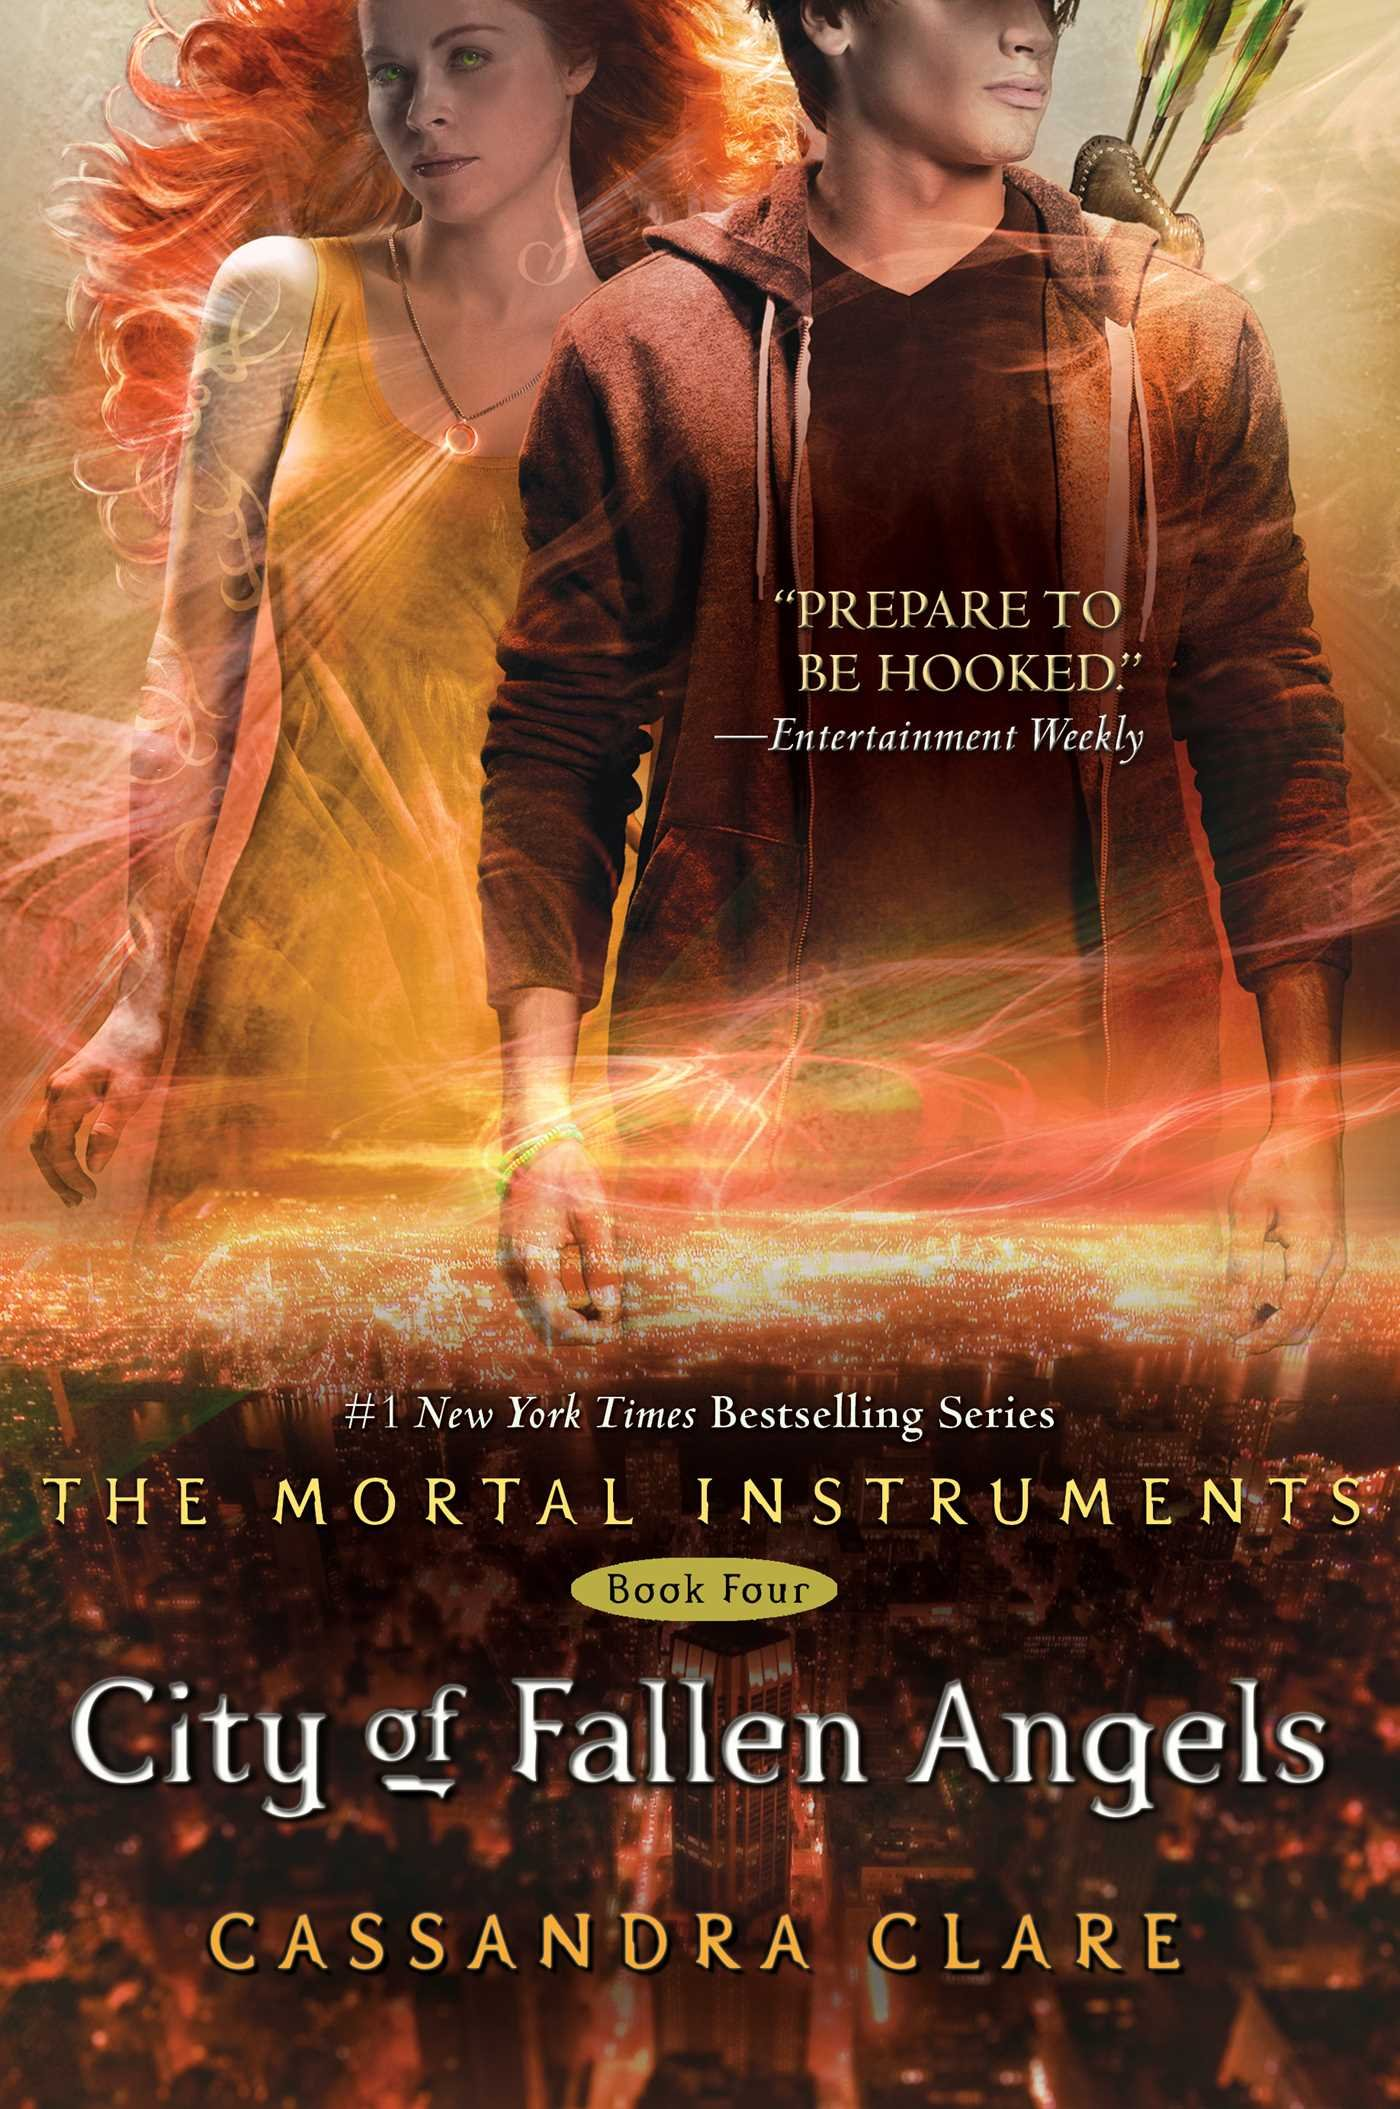 Image result for the mortal instruments book 4